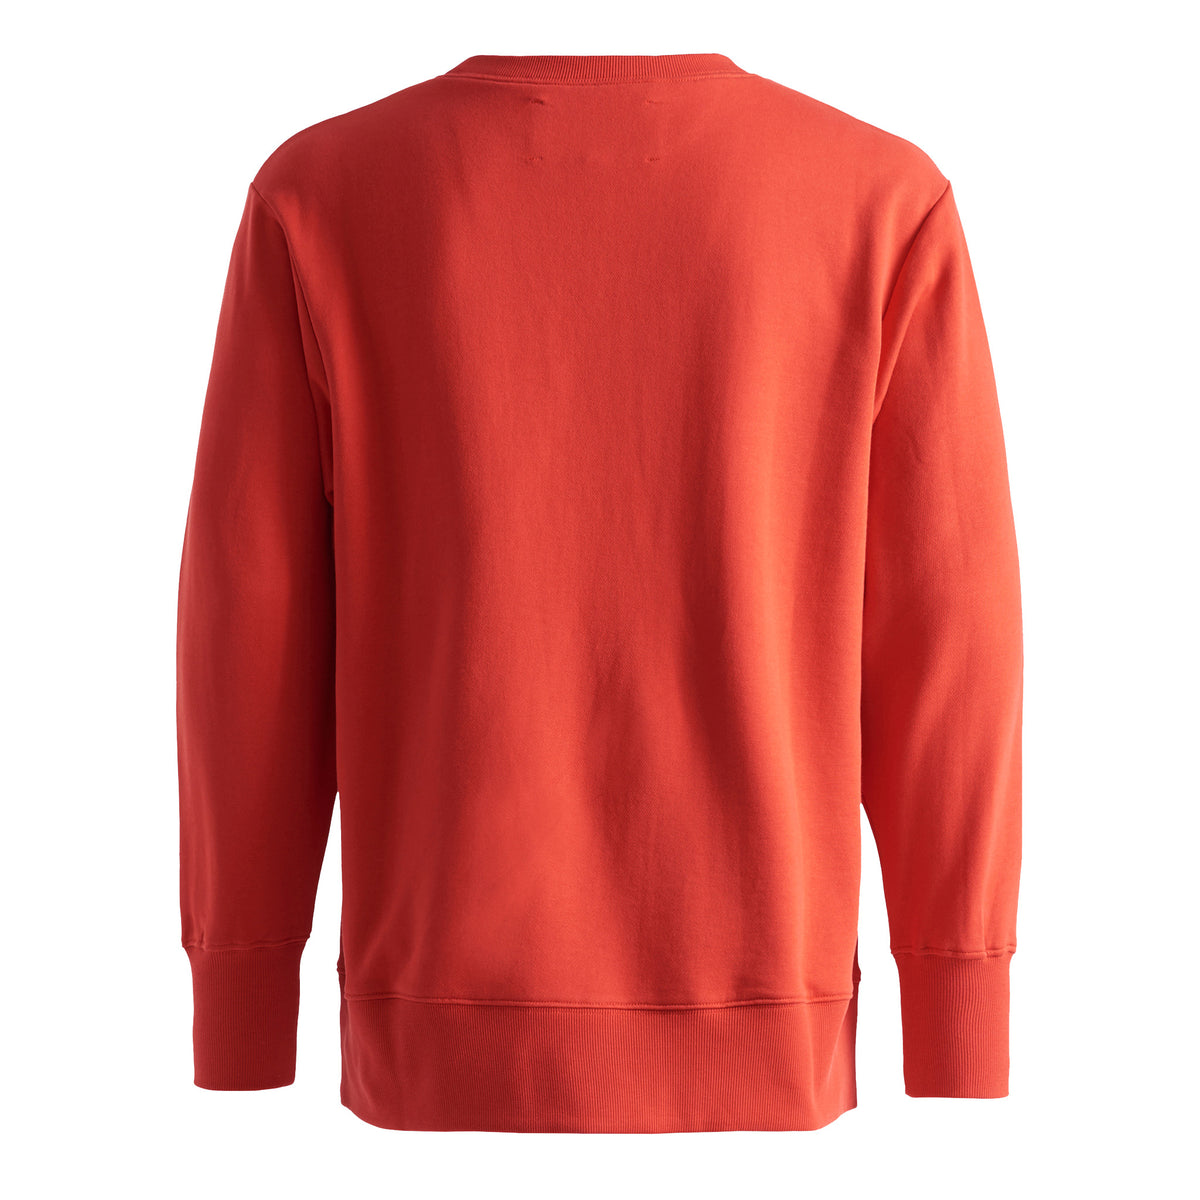 Henri Lloyd X Nigel Cabourn Technical Sweater Old Red